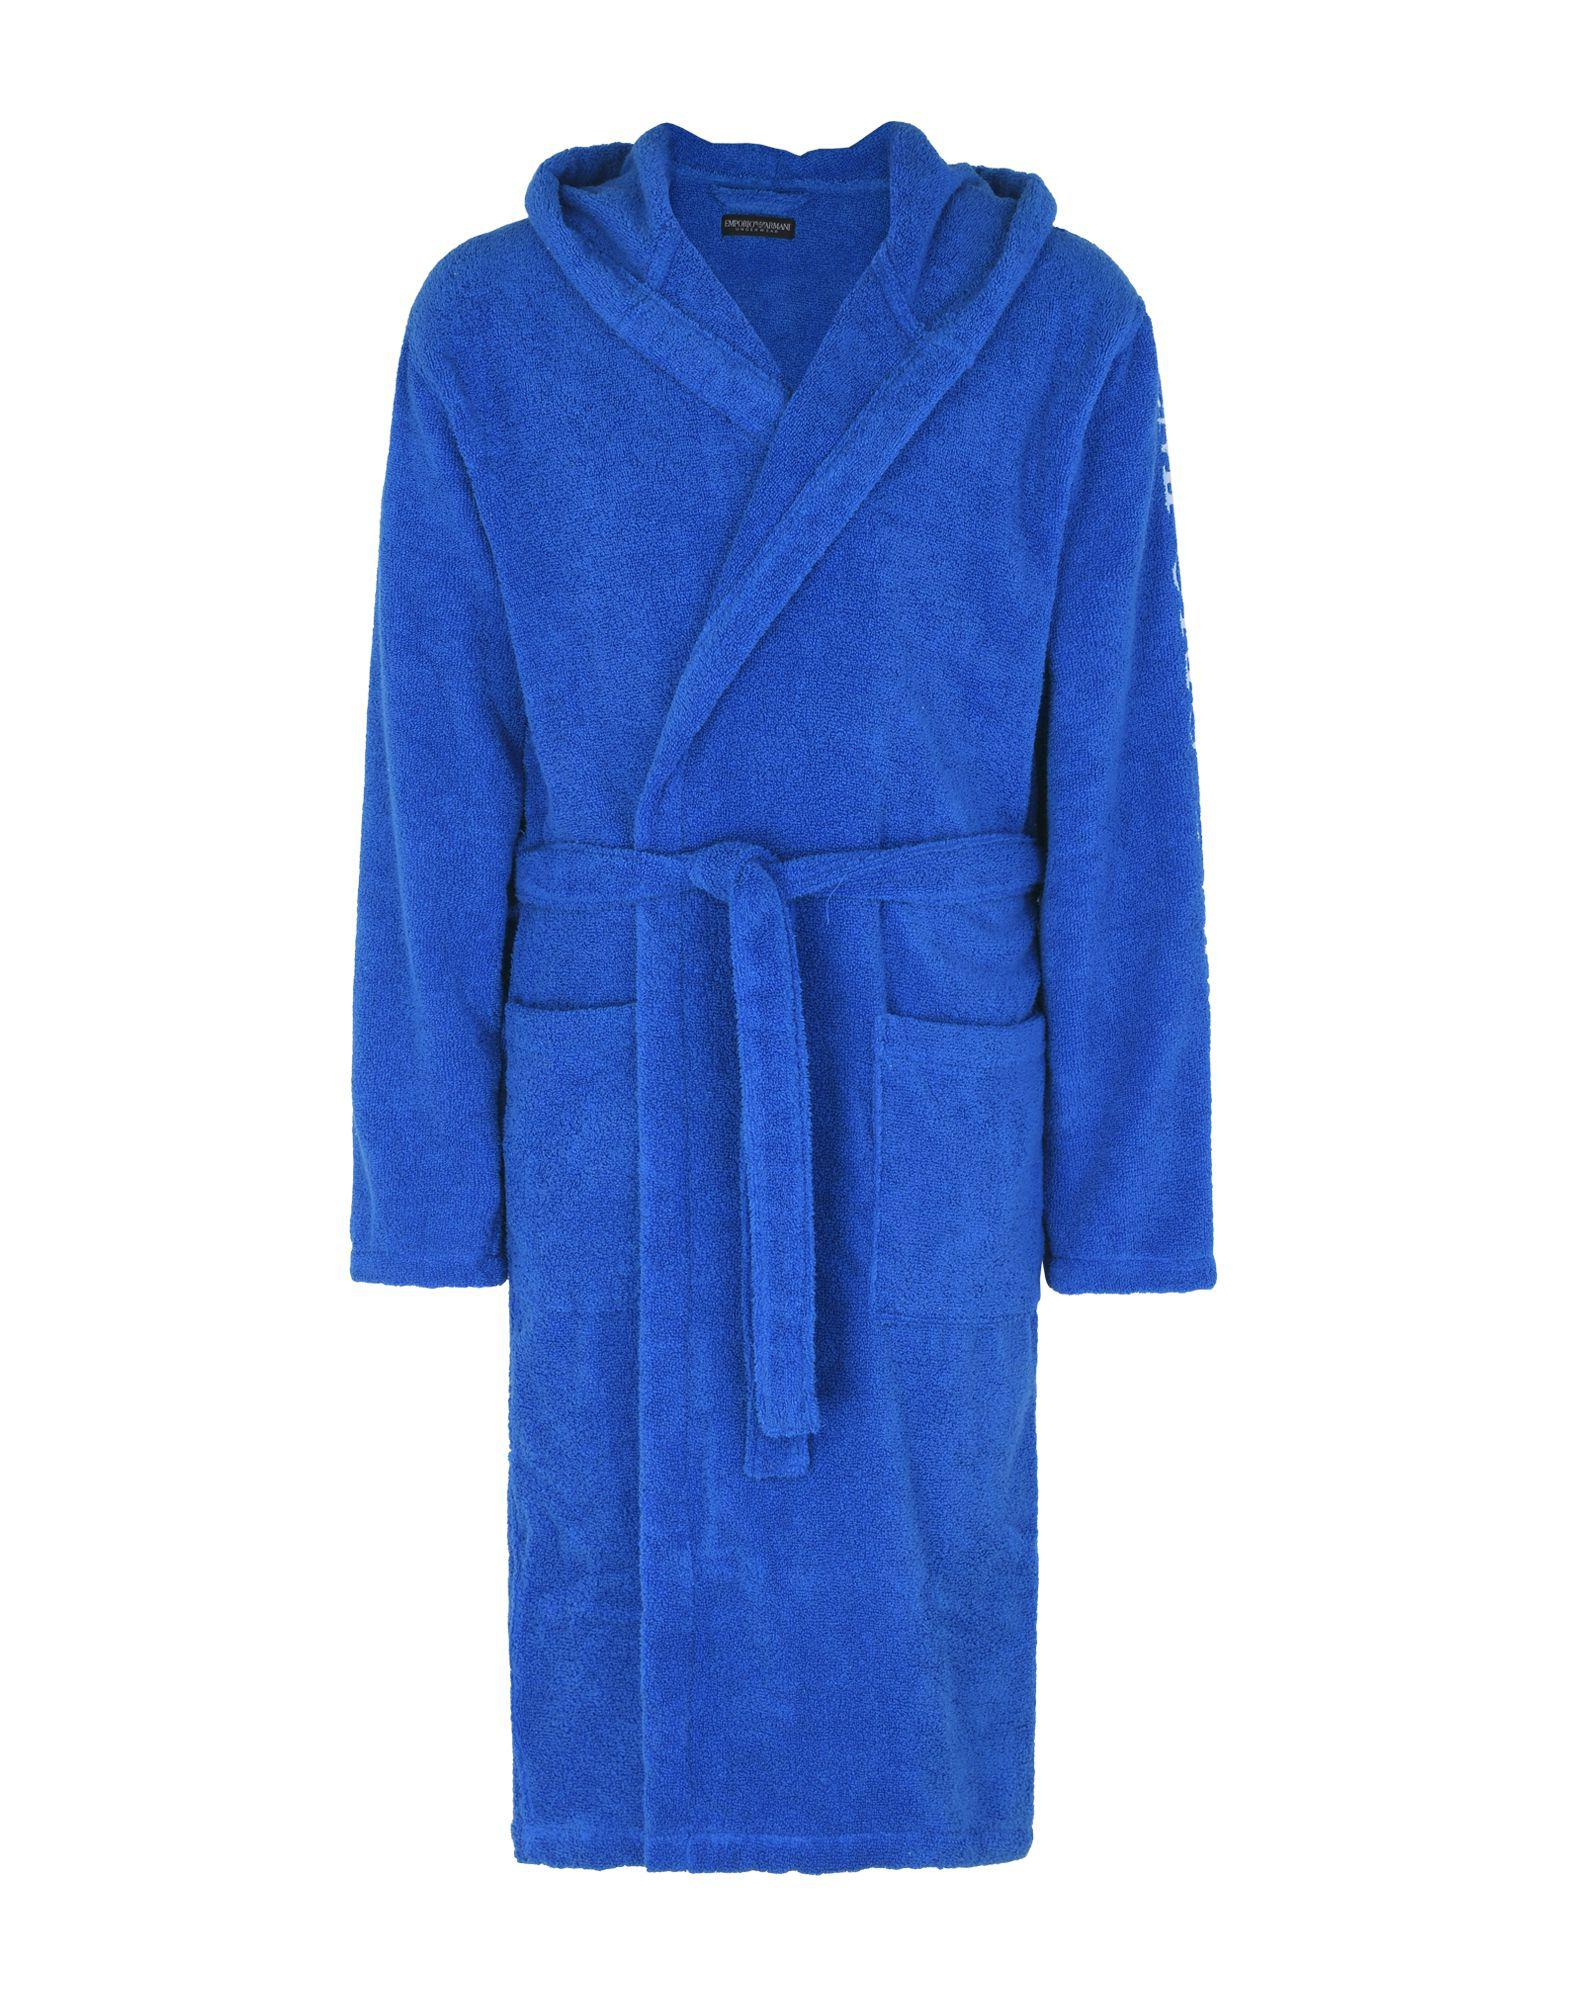 Emporio Armani Towelling Dressing Gown in Blue for Men - Lyst 5bfd645c6